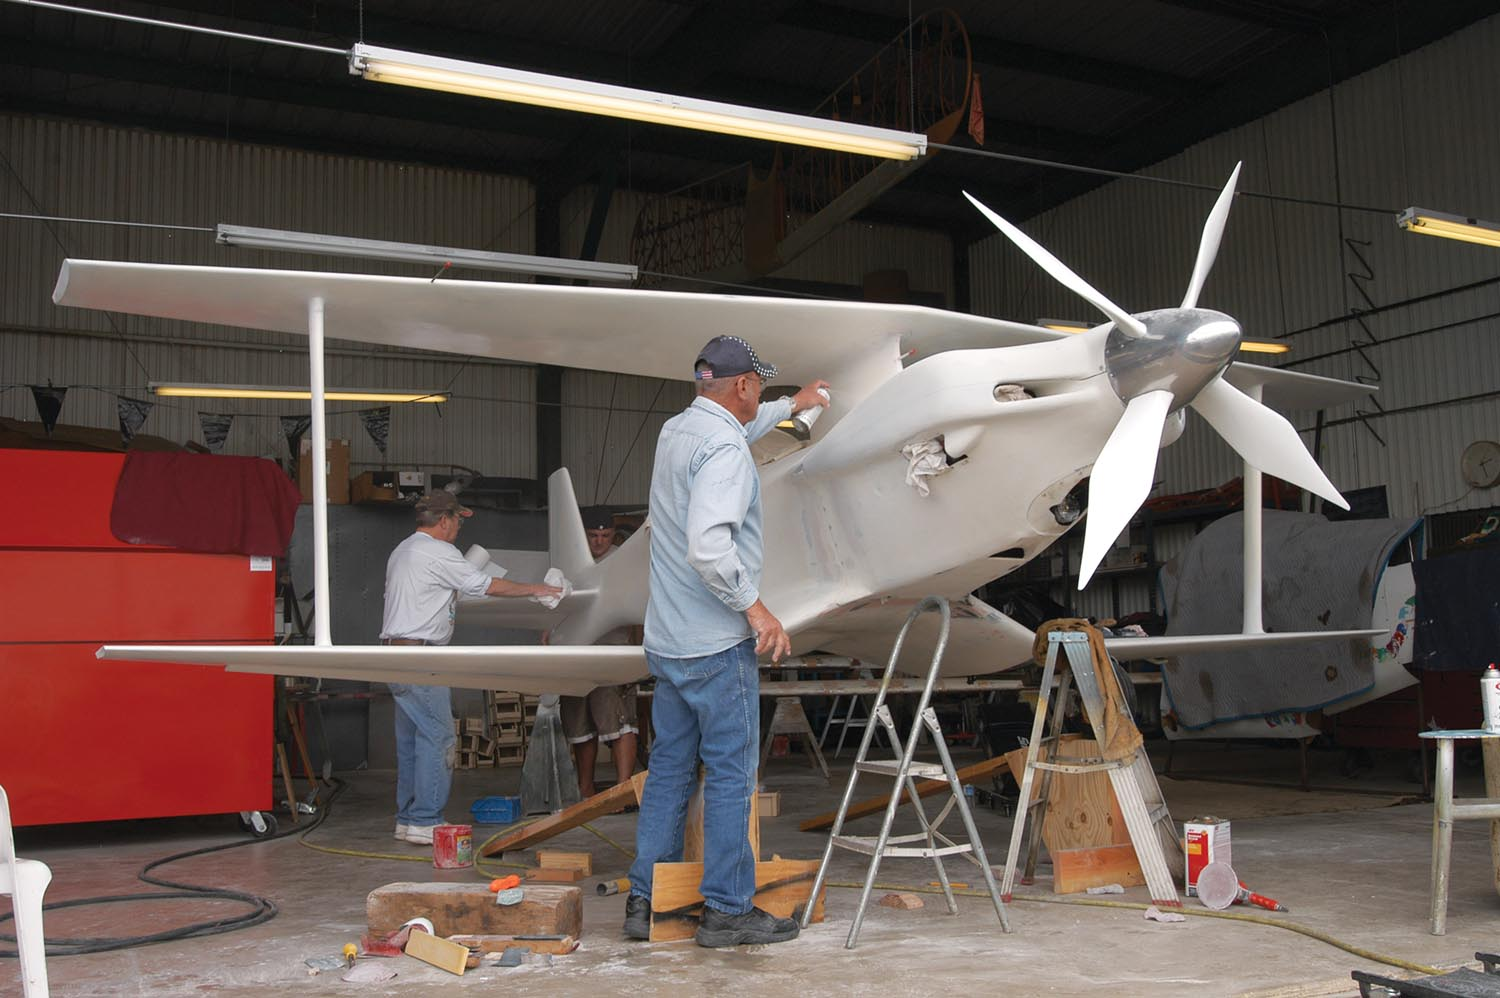 Phantom ran in primer its first two years because there was no time to paint it the first year, and there was still so much other work going on the second year. Here Lee Dorrance preps the tail while Bob Busch works the pylon in preparation for paint in 2005.